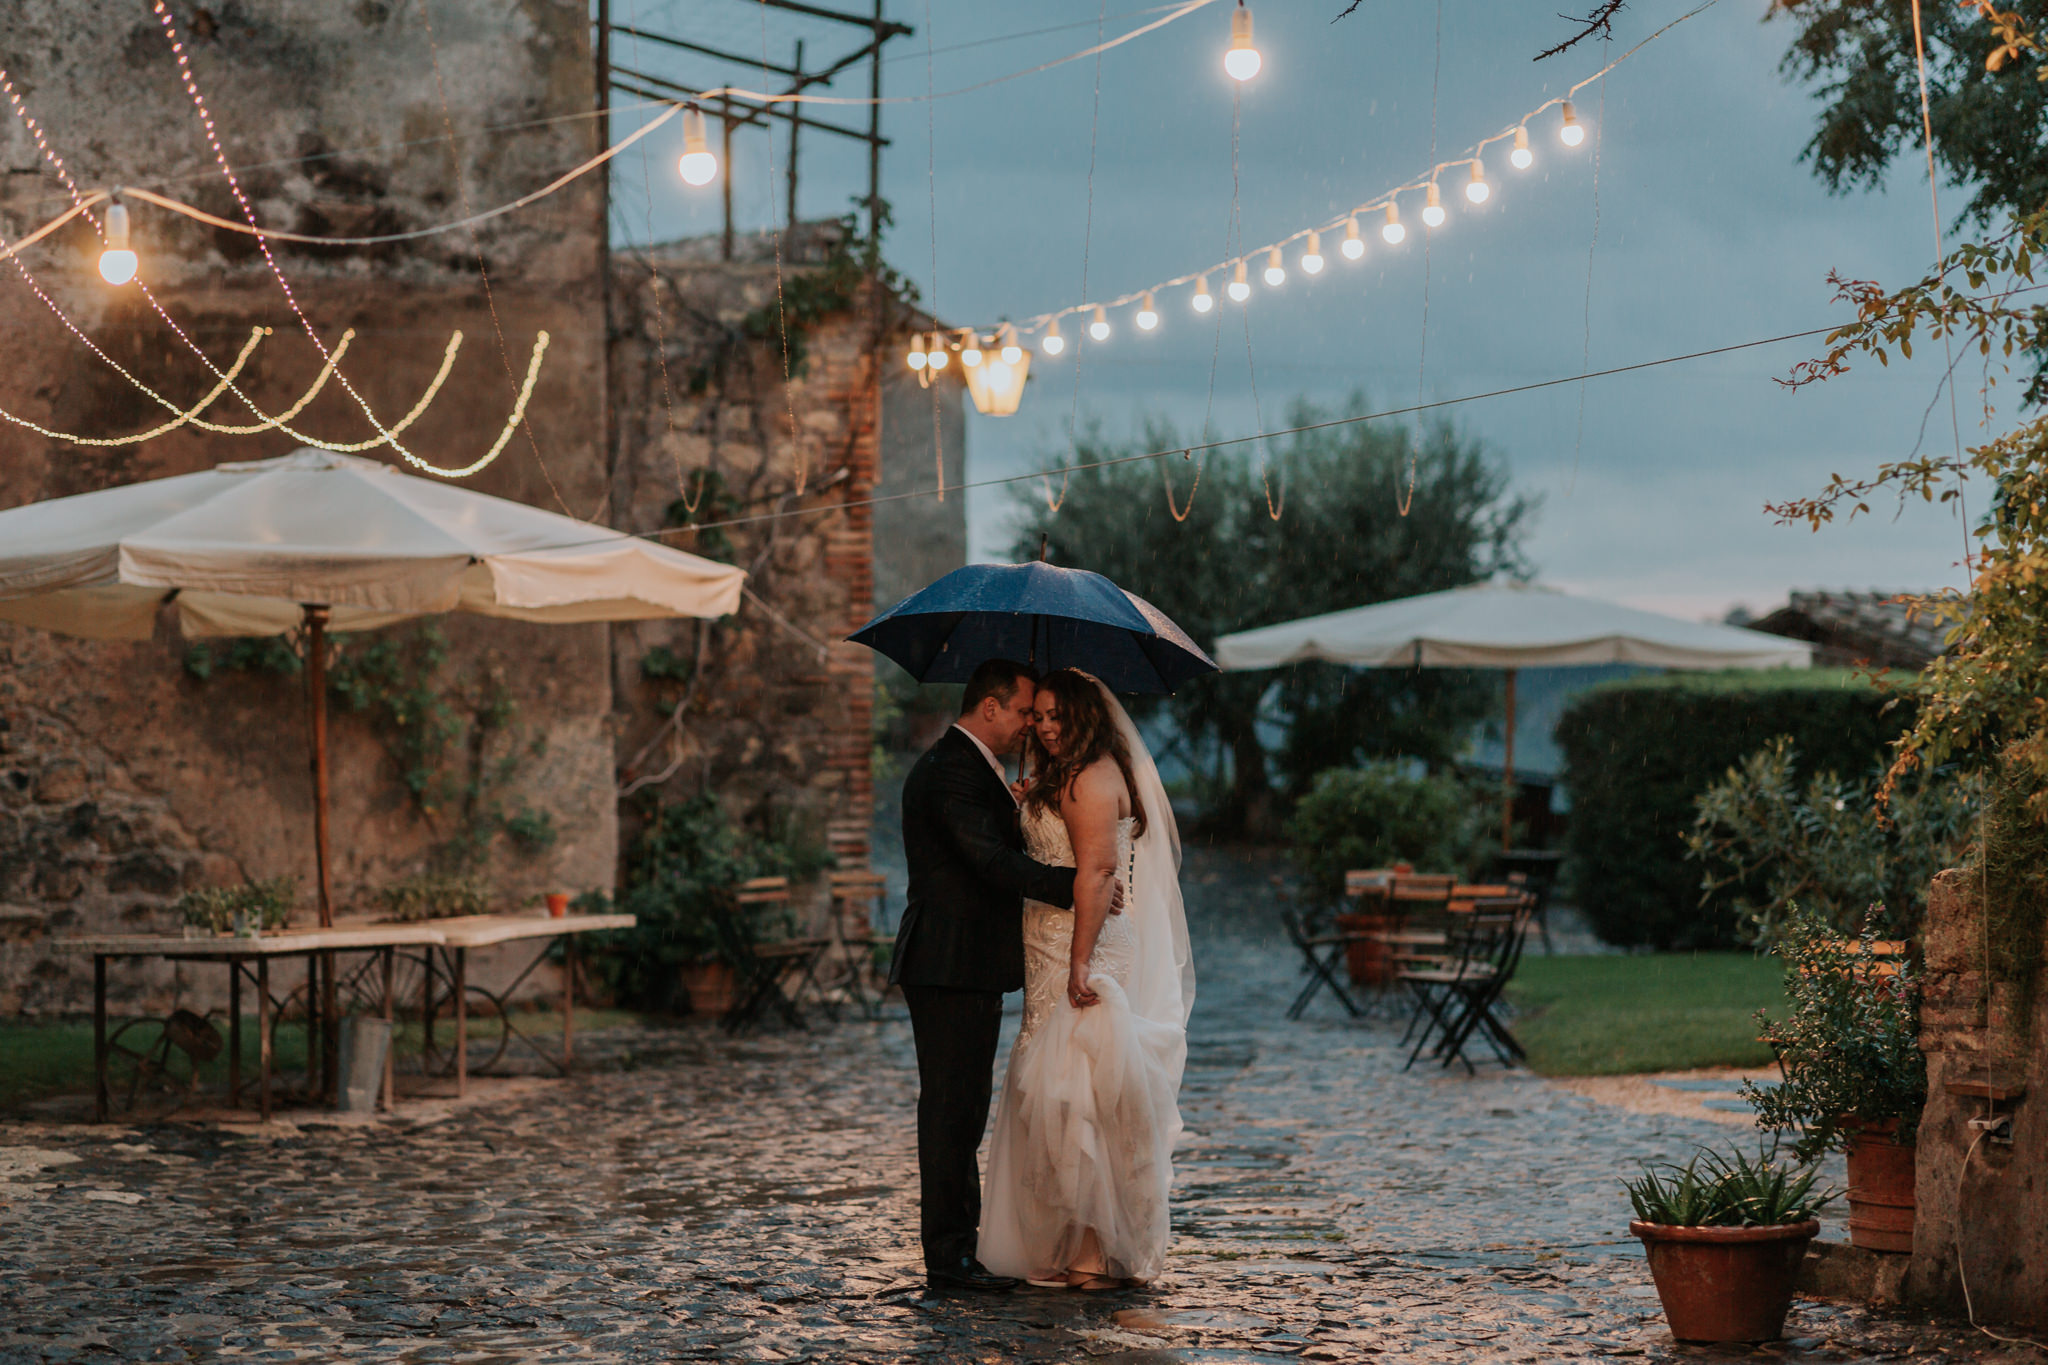 Elkie&Doug_Wedding_Italy_KristieCarrickPhotography_LOW-645.jpg